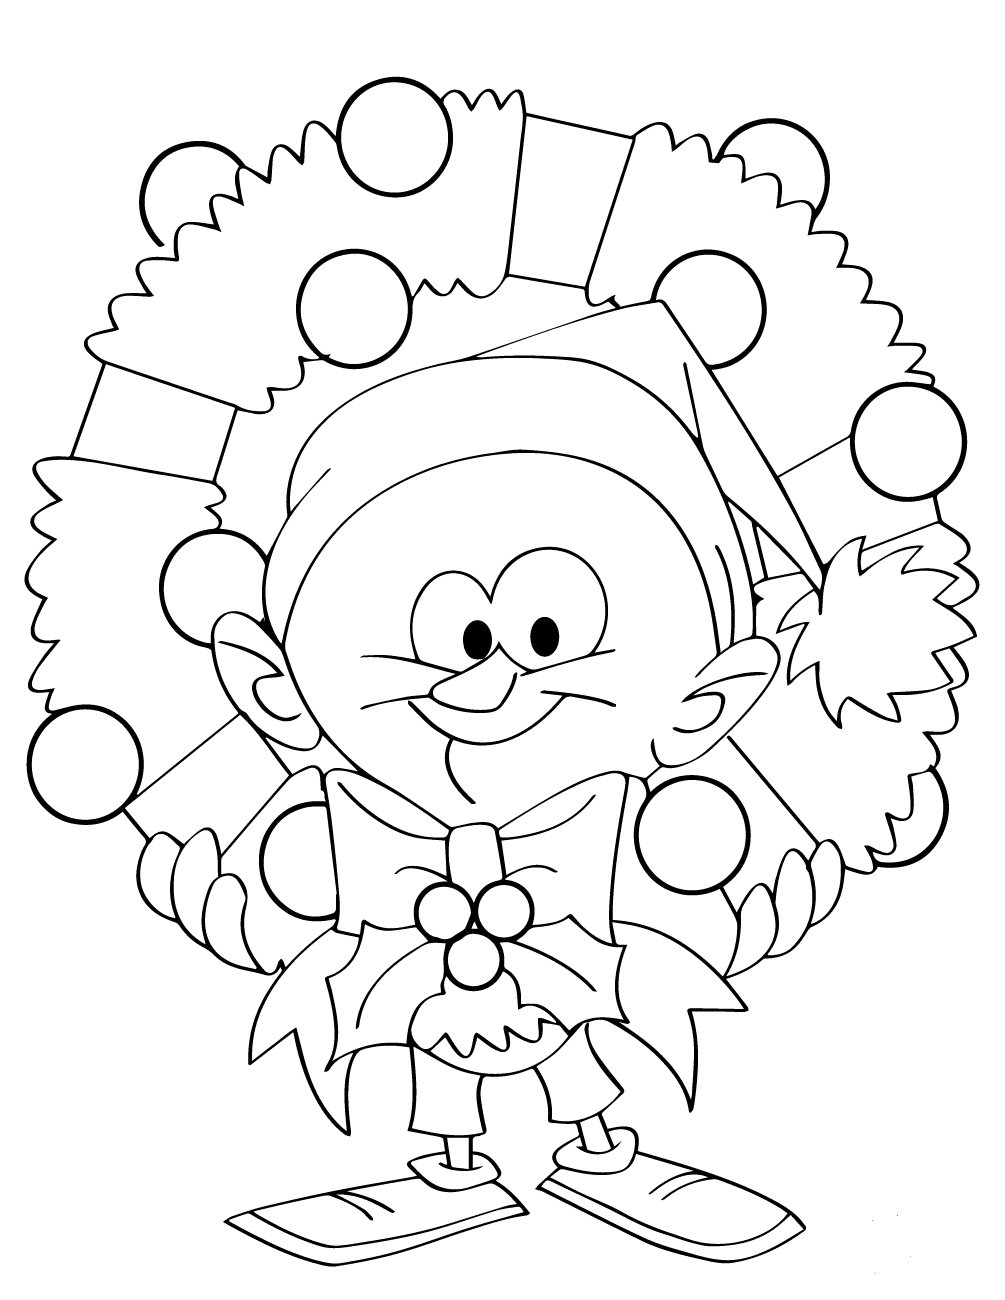 Elf With Wreath Coloring Page